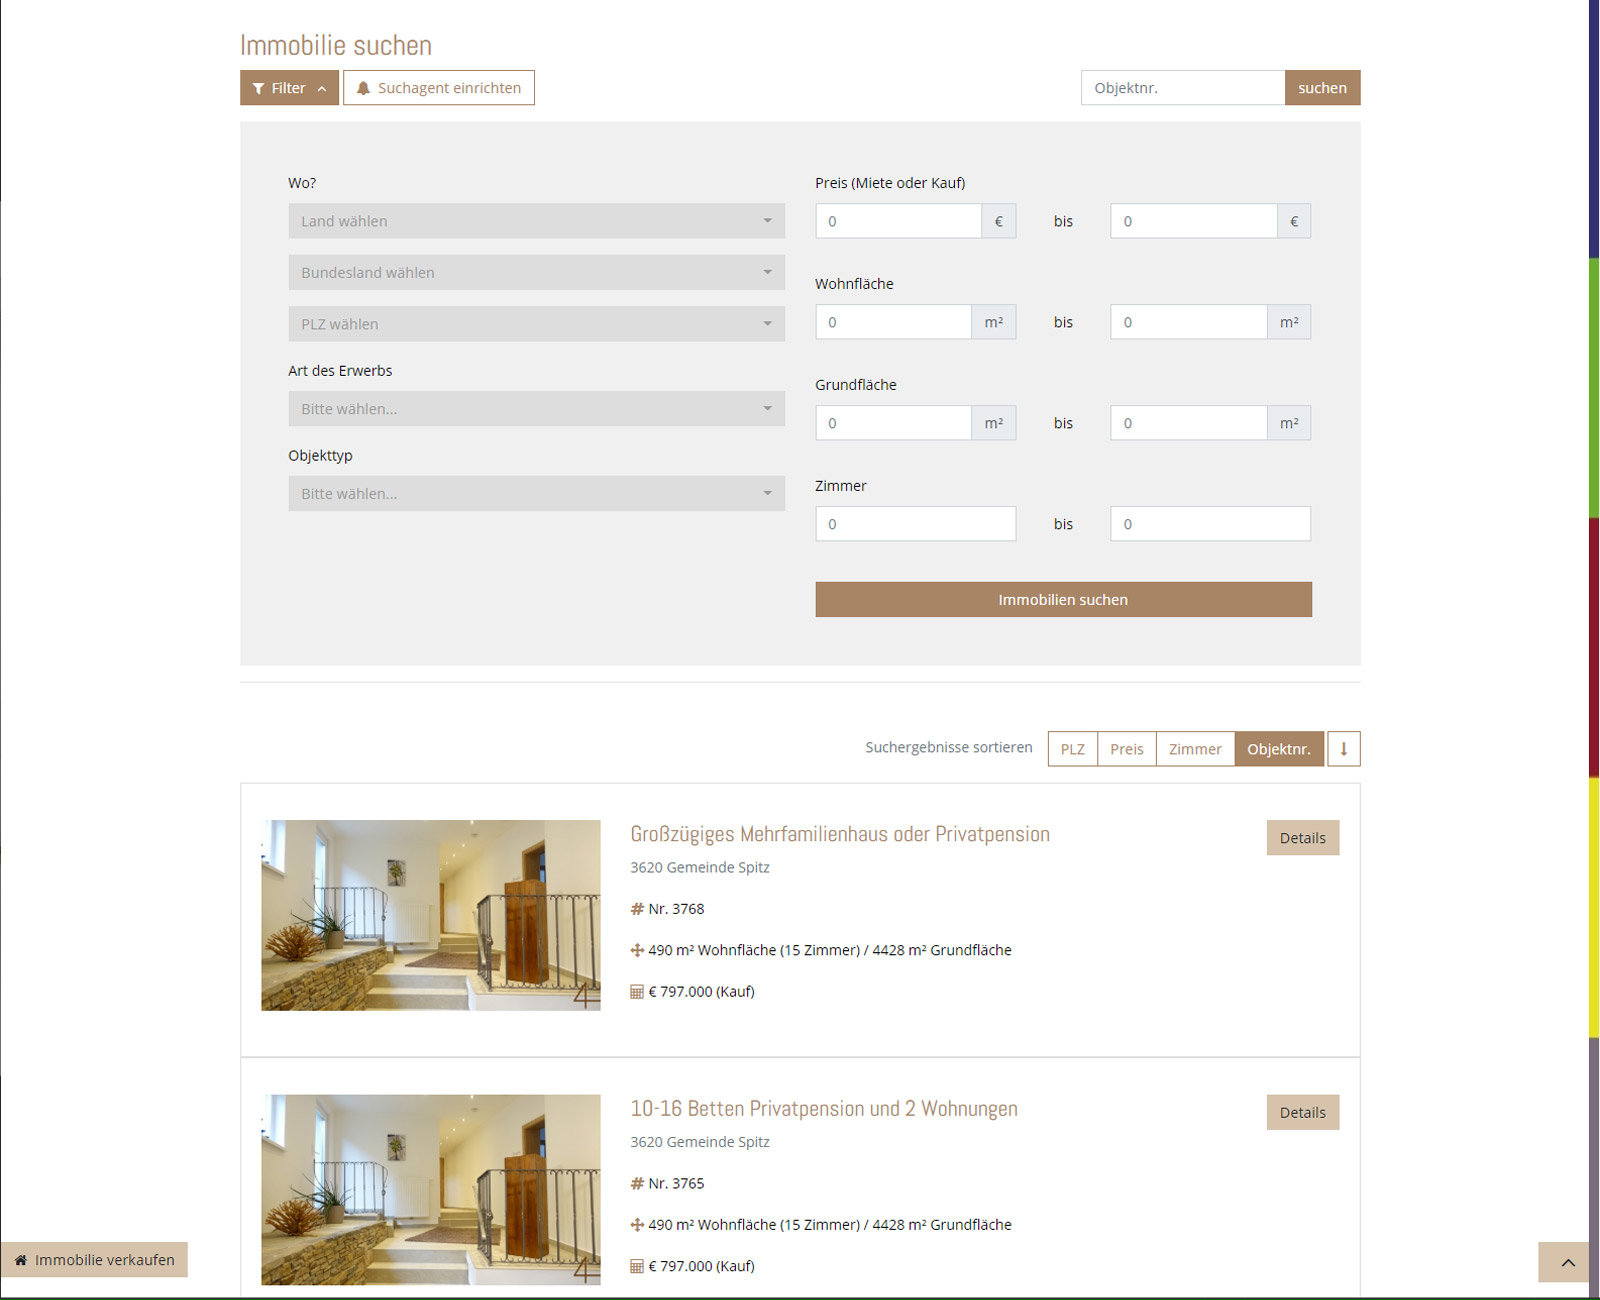 4immobilien Website nach Redesign